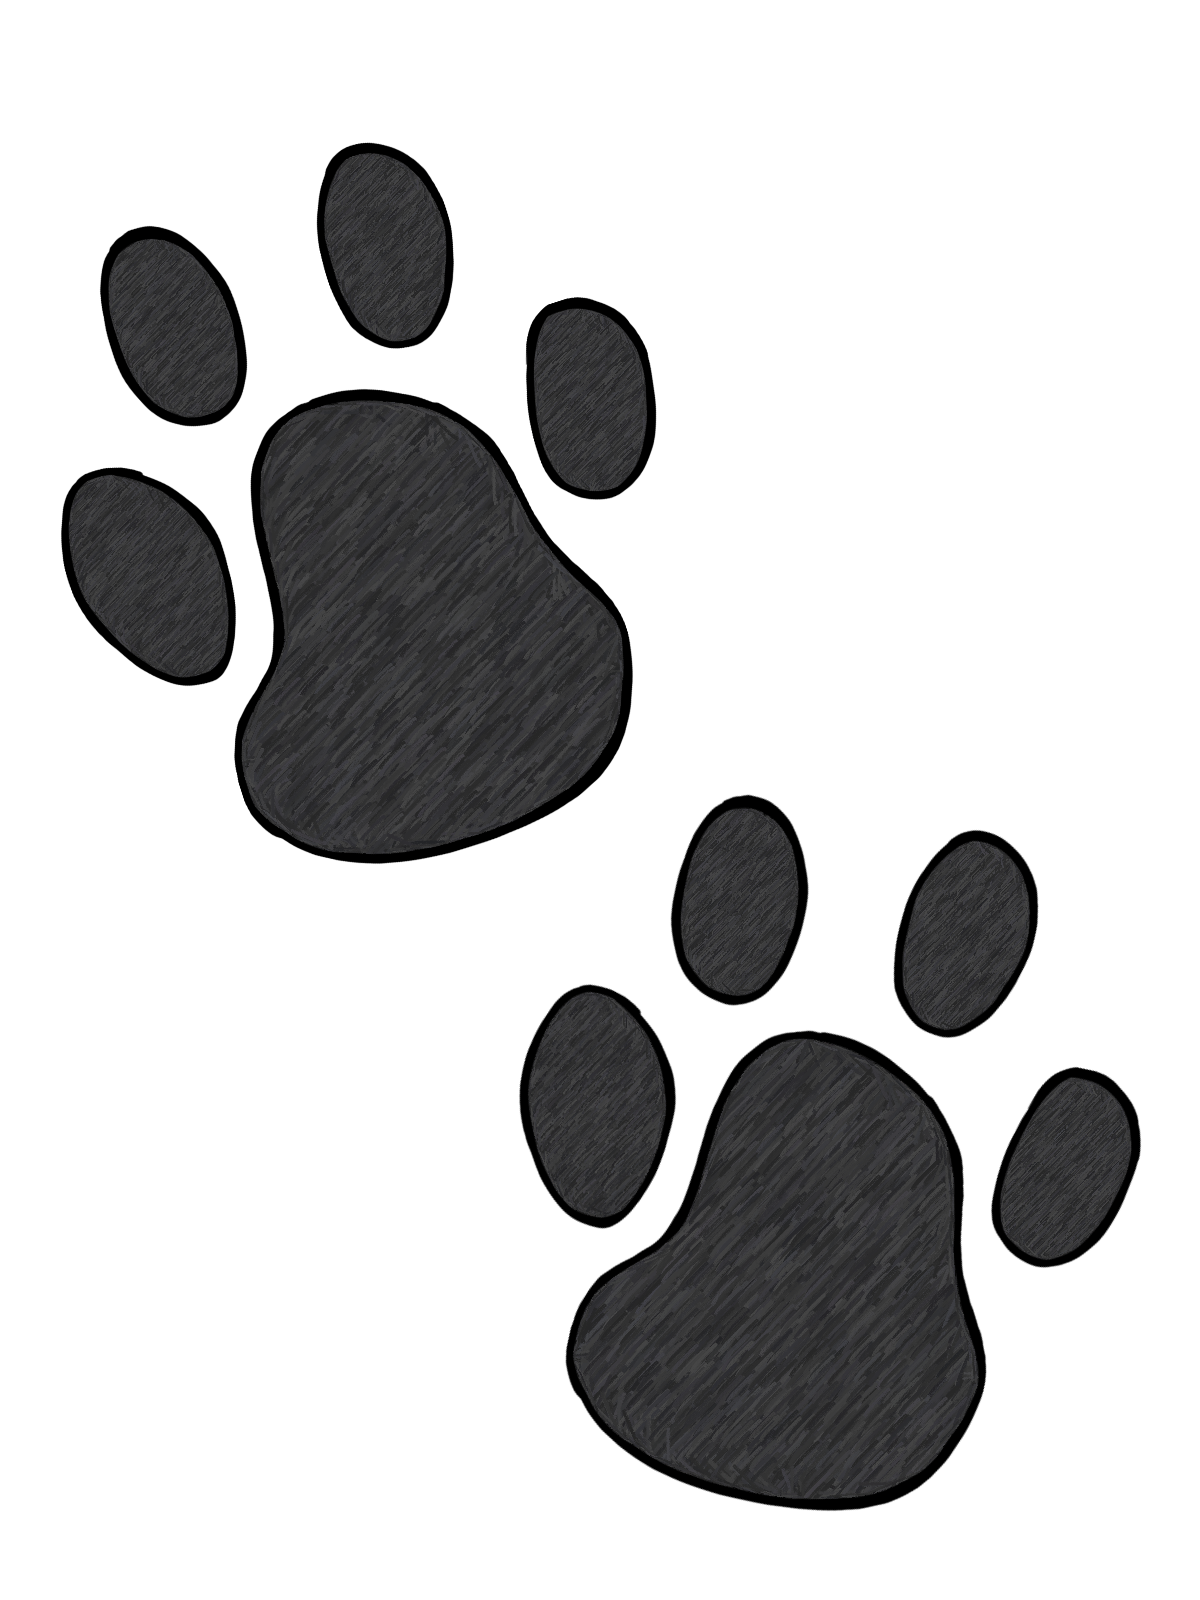 Footprint heart clipart clipart free stock Clip Art by Carrie Teaching First: Pets Doodles with FREEBIE Paw Images clipart free stock